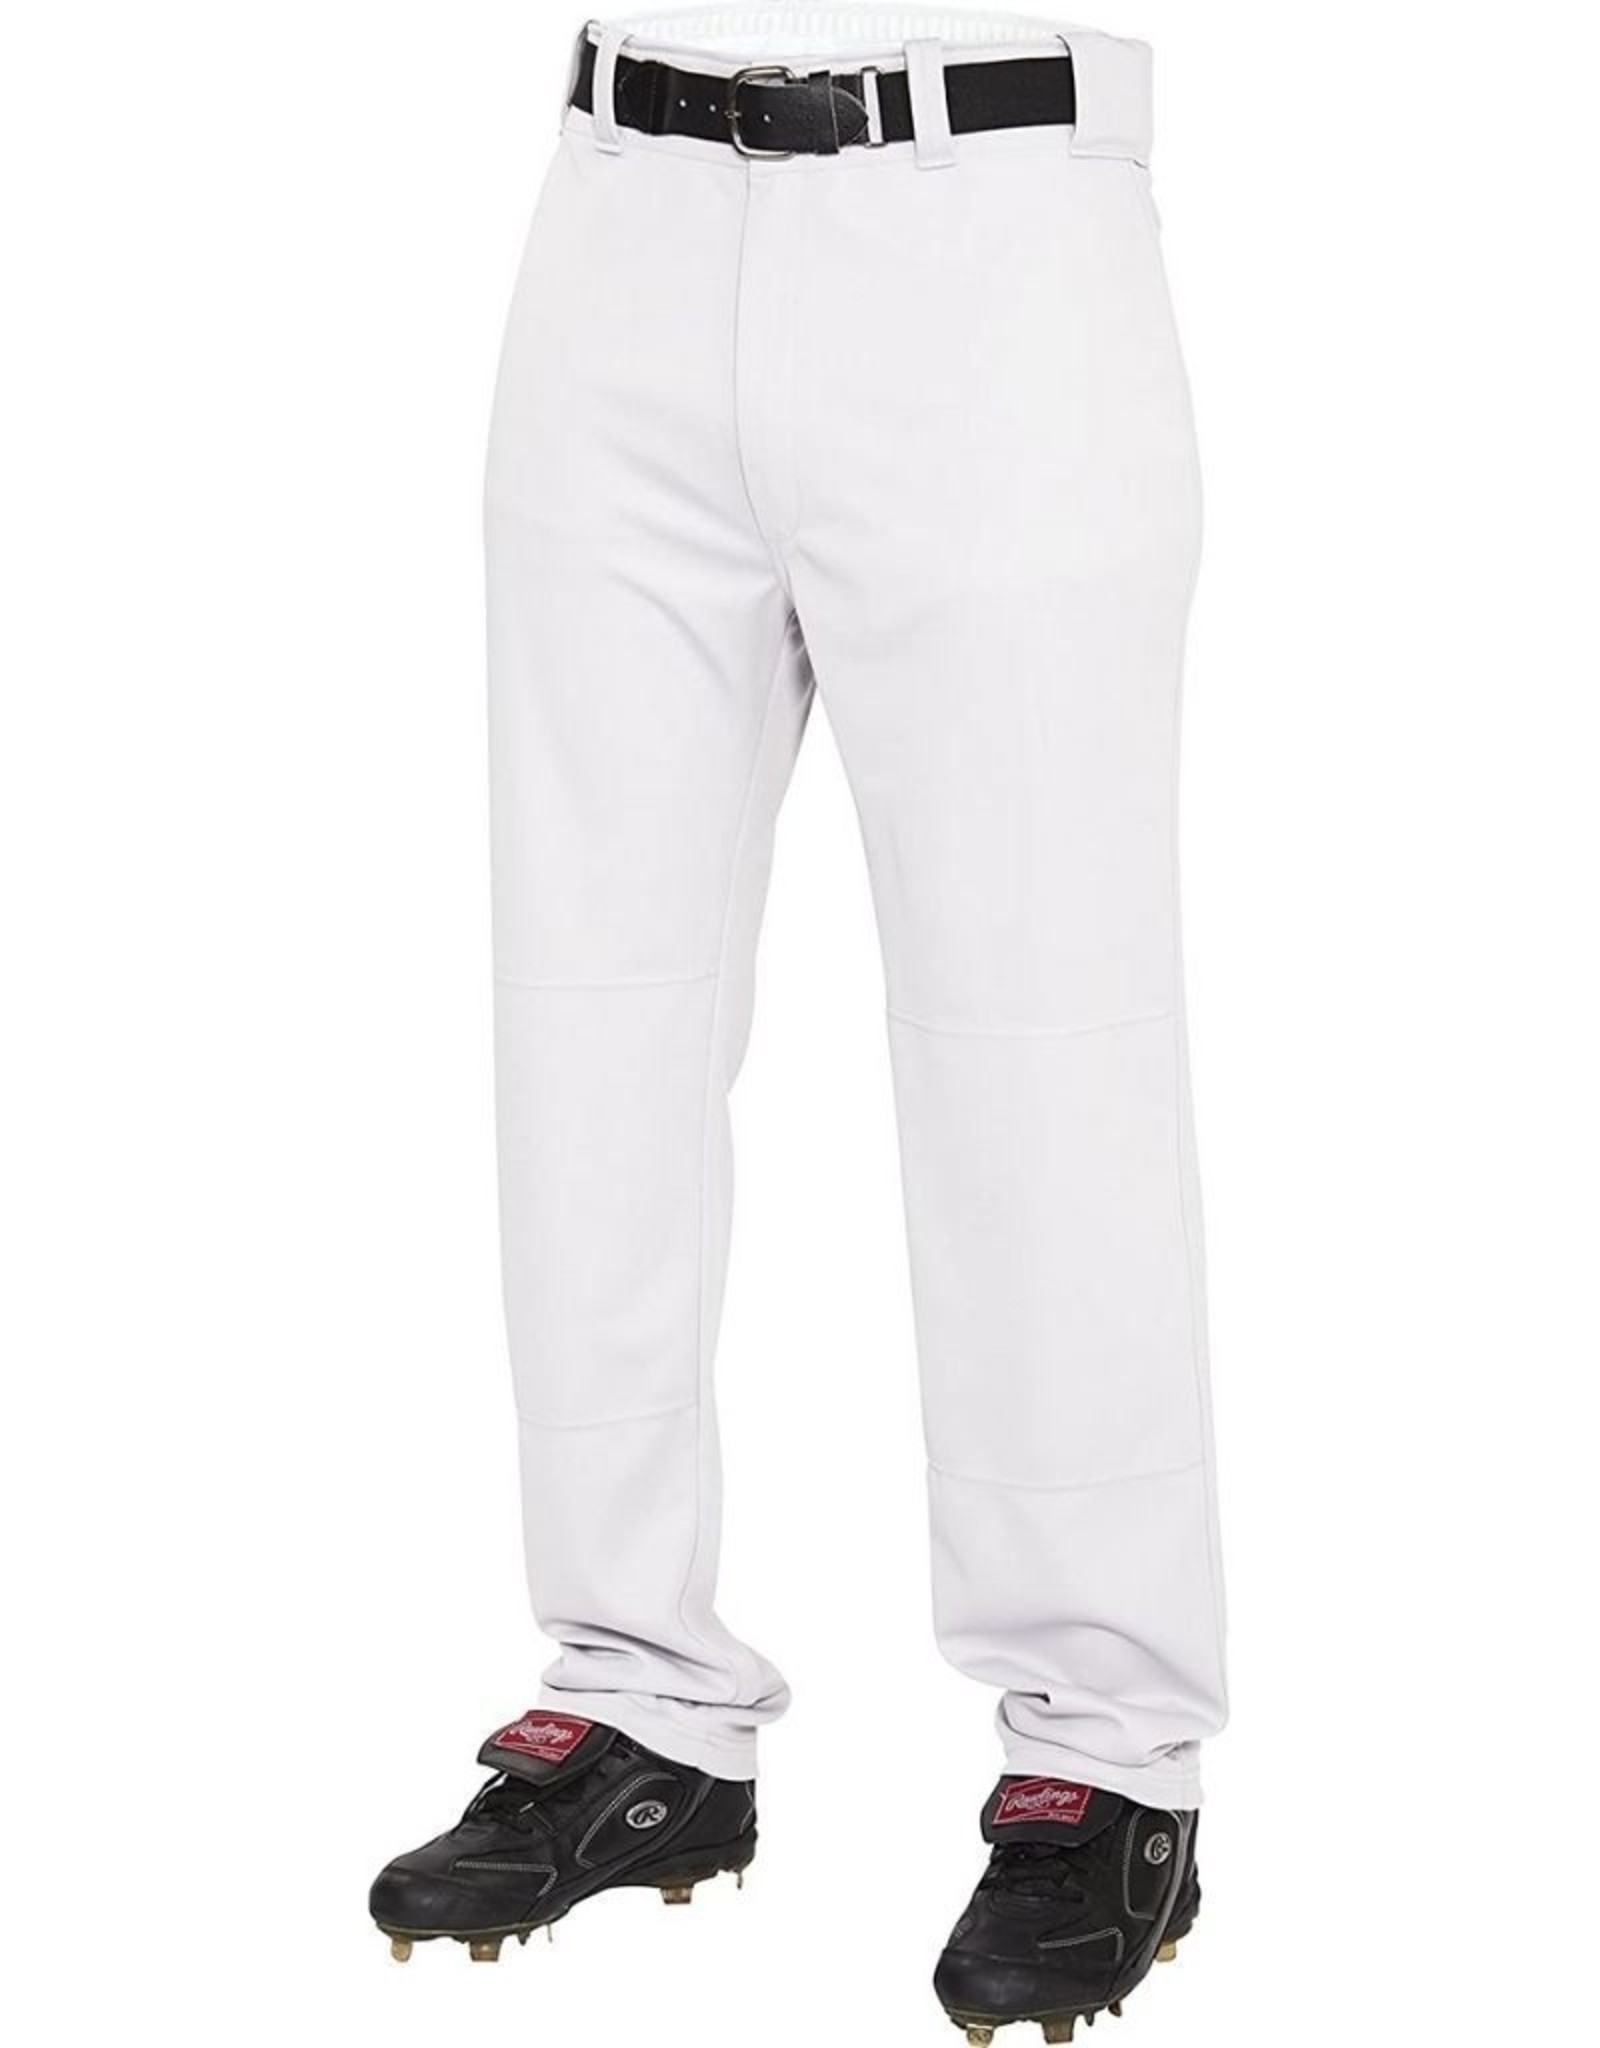 Rawlings Semi-Relaxed Youth Baseball Pants White